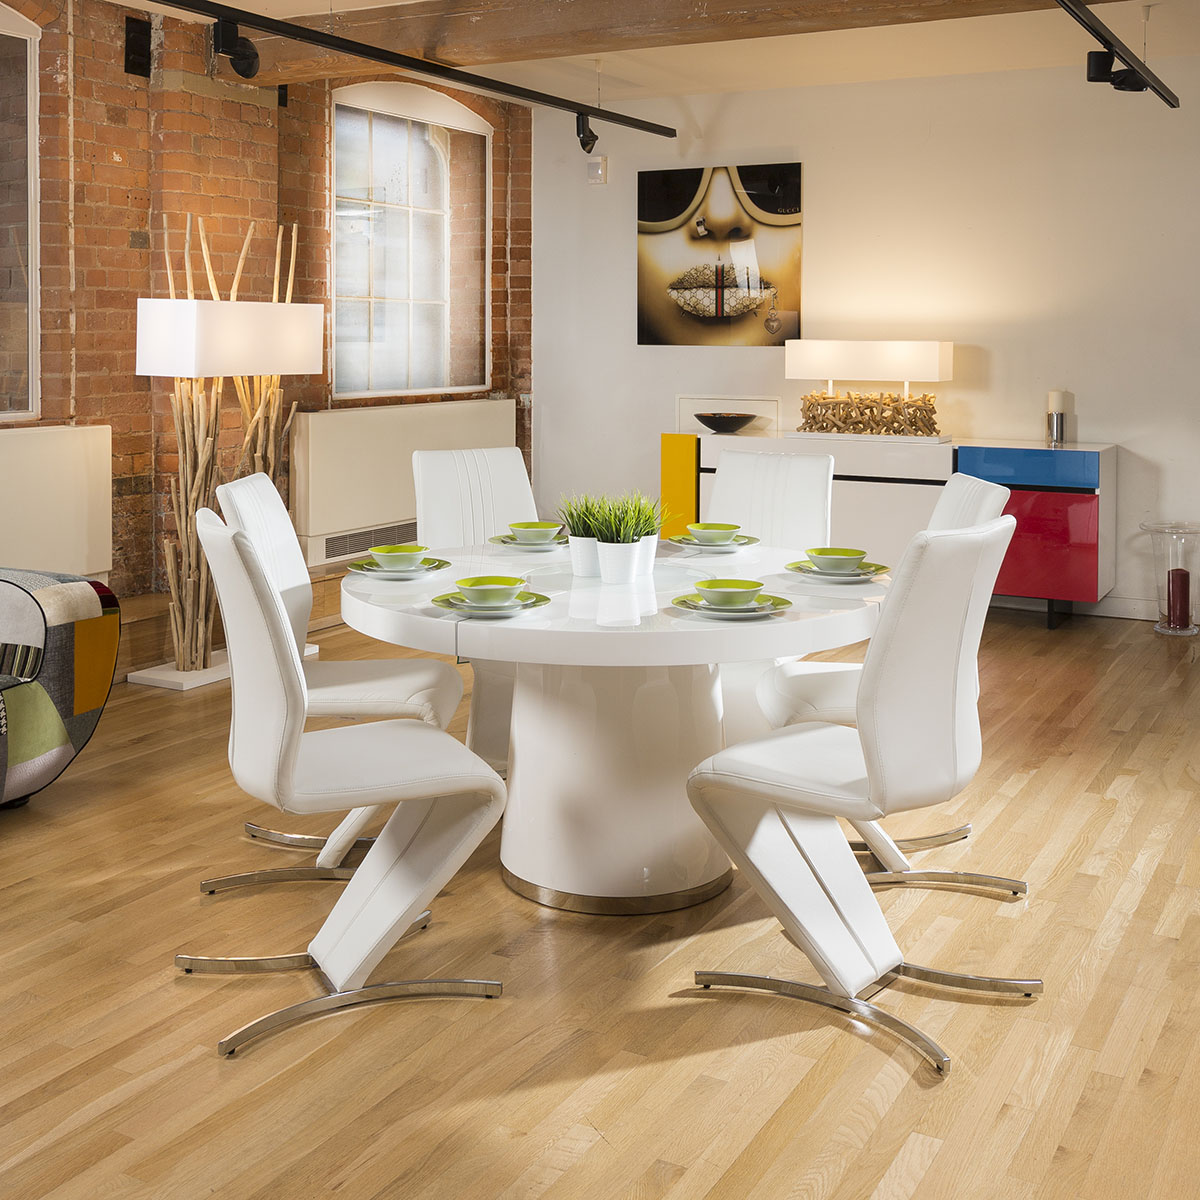 Sentinel Modern 1400mm Round White Gloss Dining Table 6 Beautiful Z Chairs